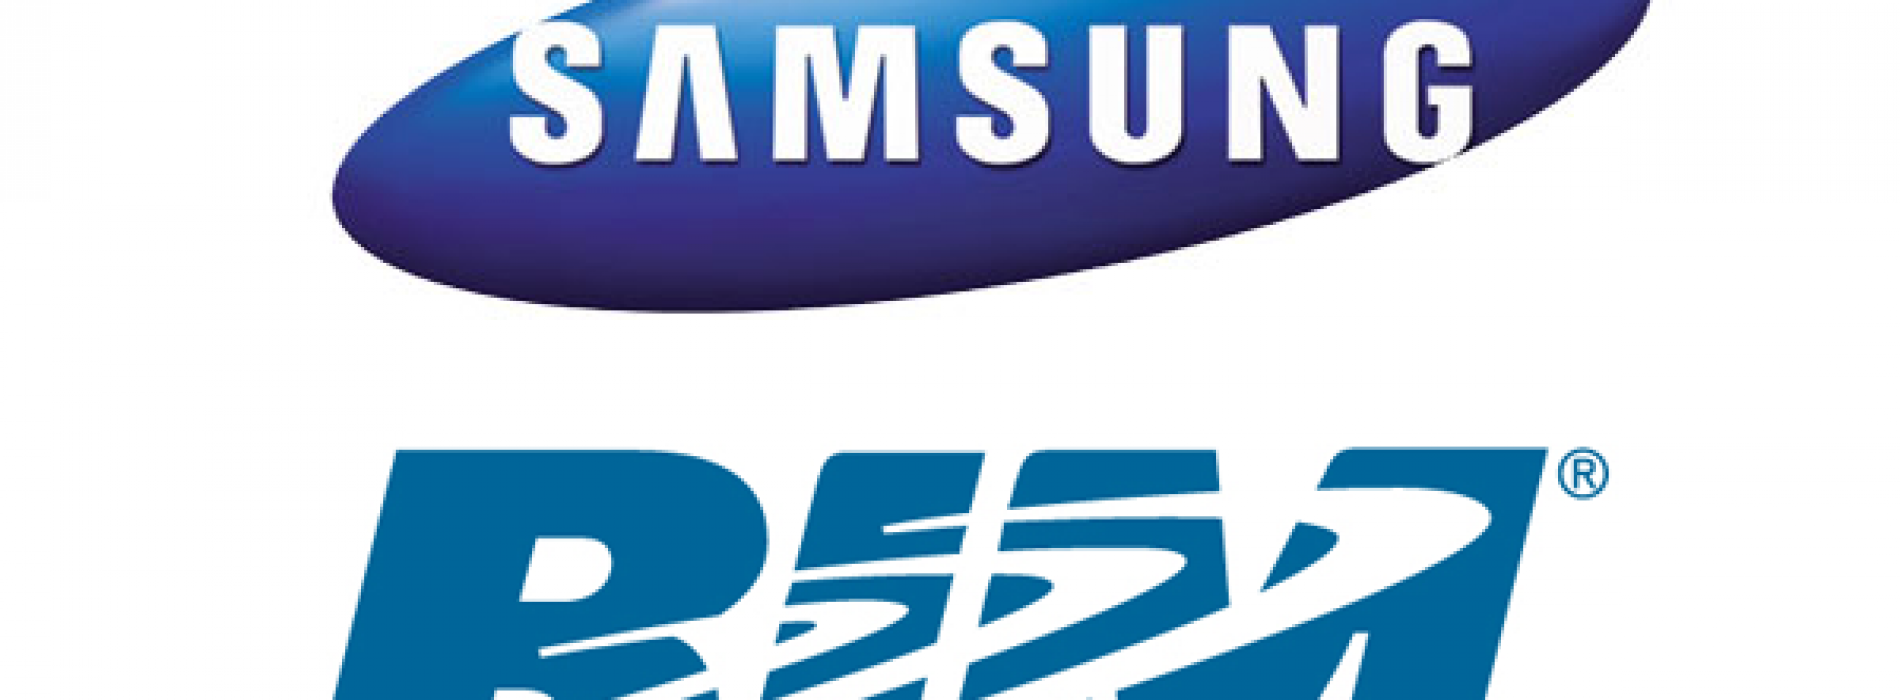 Samsung considering licensing Blackberry, sources indicate